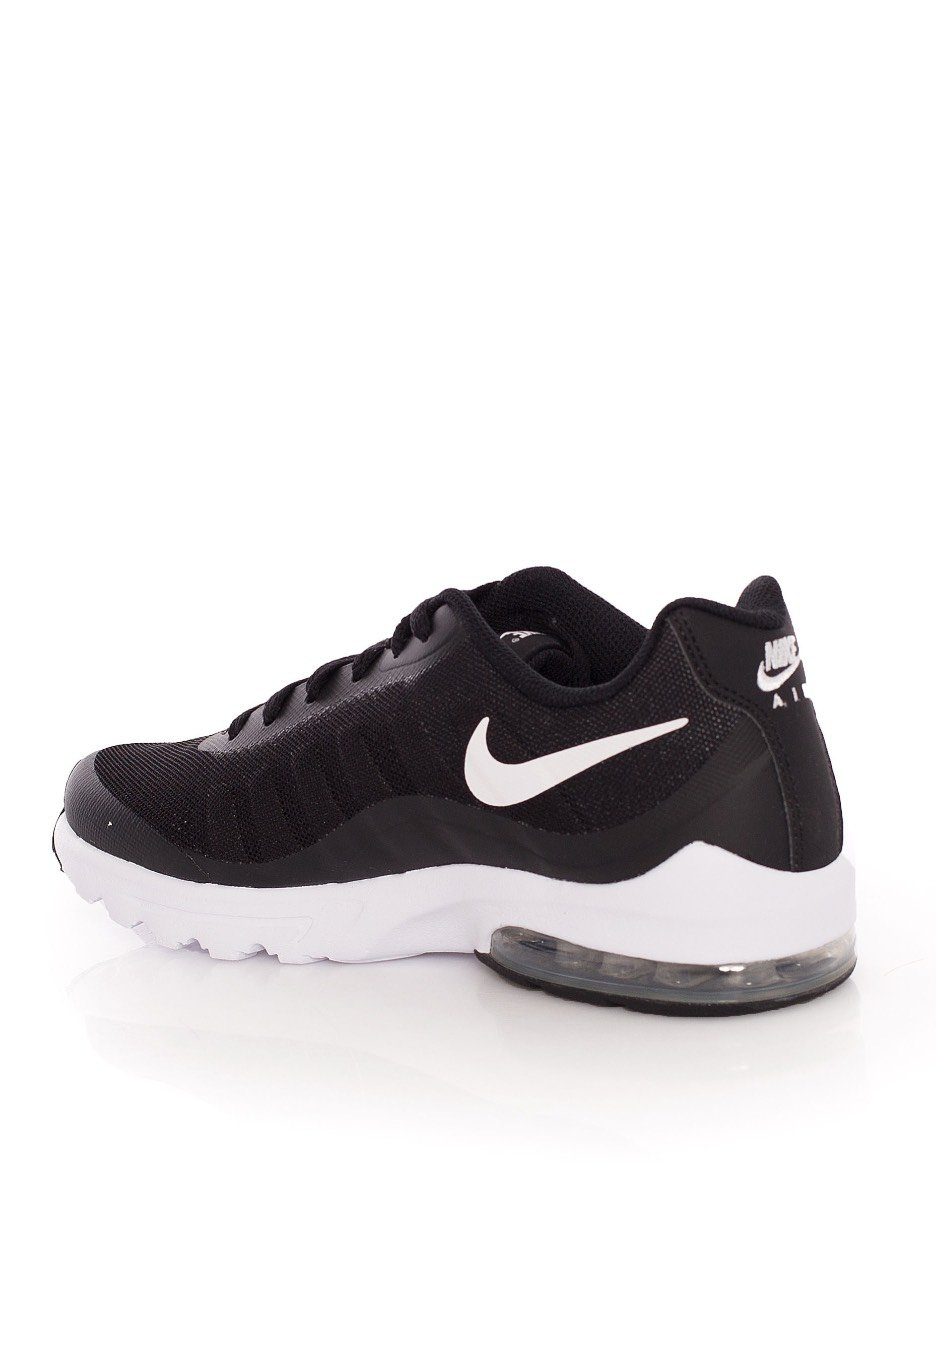 Buy Authentic Nike Air Max Invigor Shoes Shoes Online|Real